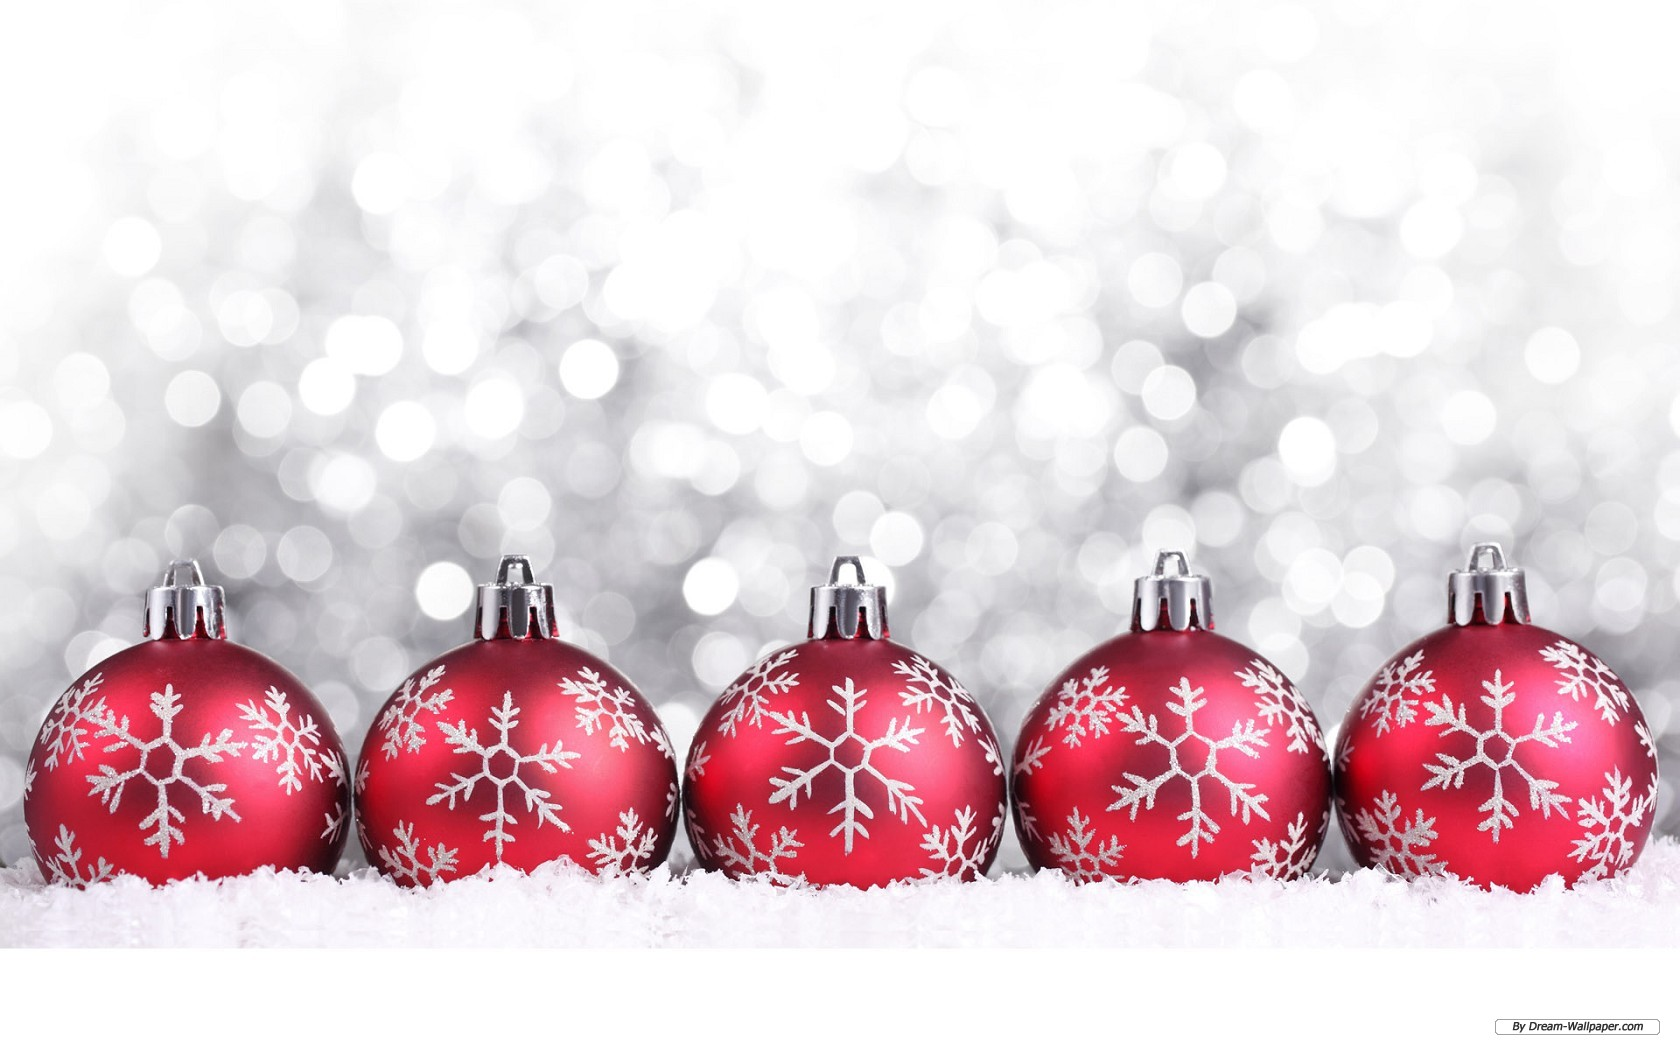 Christmas Ornament Background.Christmas Ornaments Background Wallpaper 1680x1050 26291